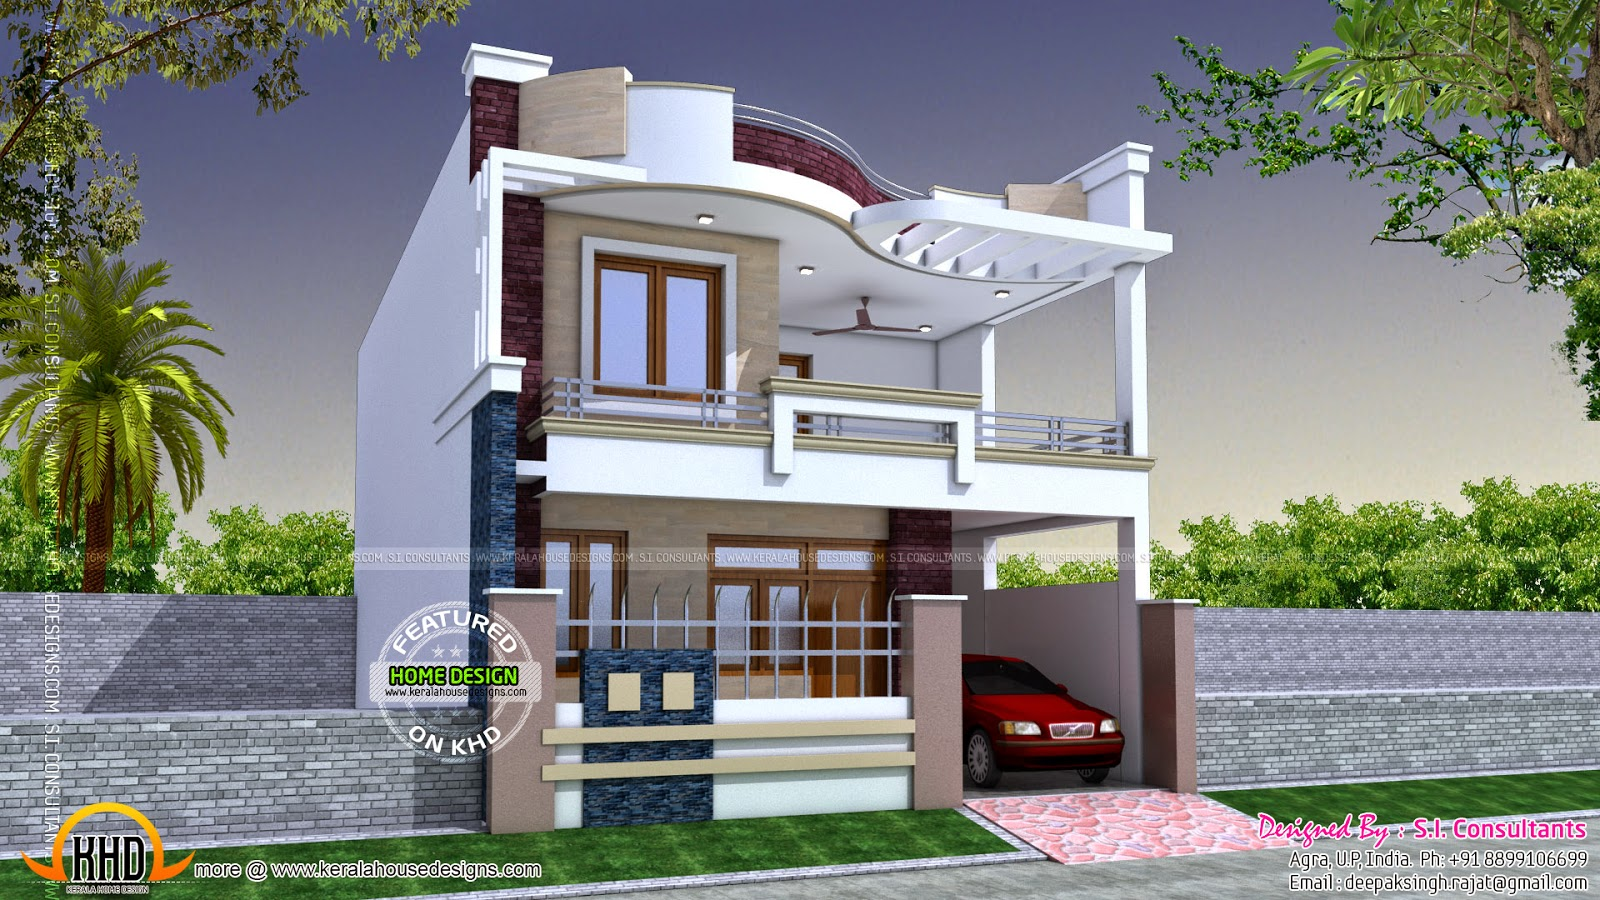 Image gallery indian home design for House naksha image